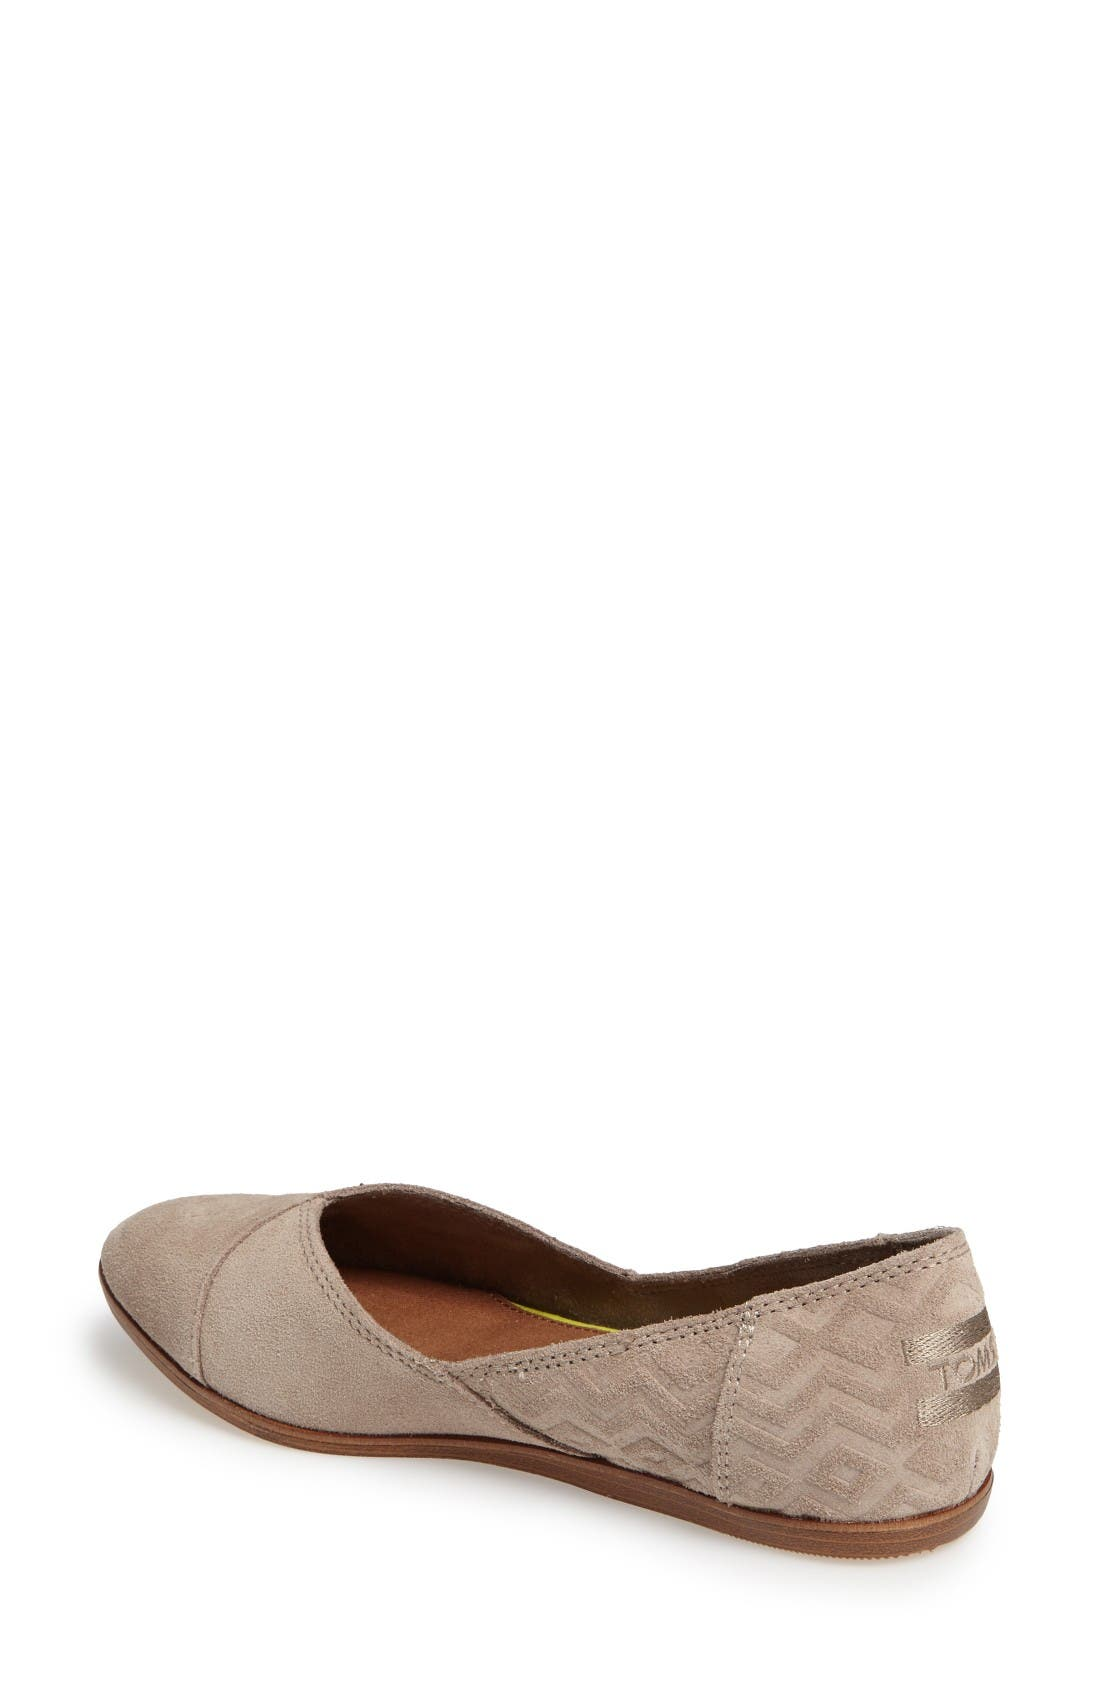 Alternate Image 2  - TOMS Jutti Flat (Women)